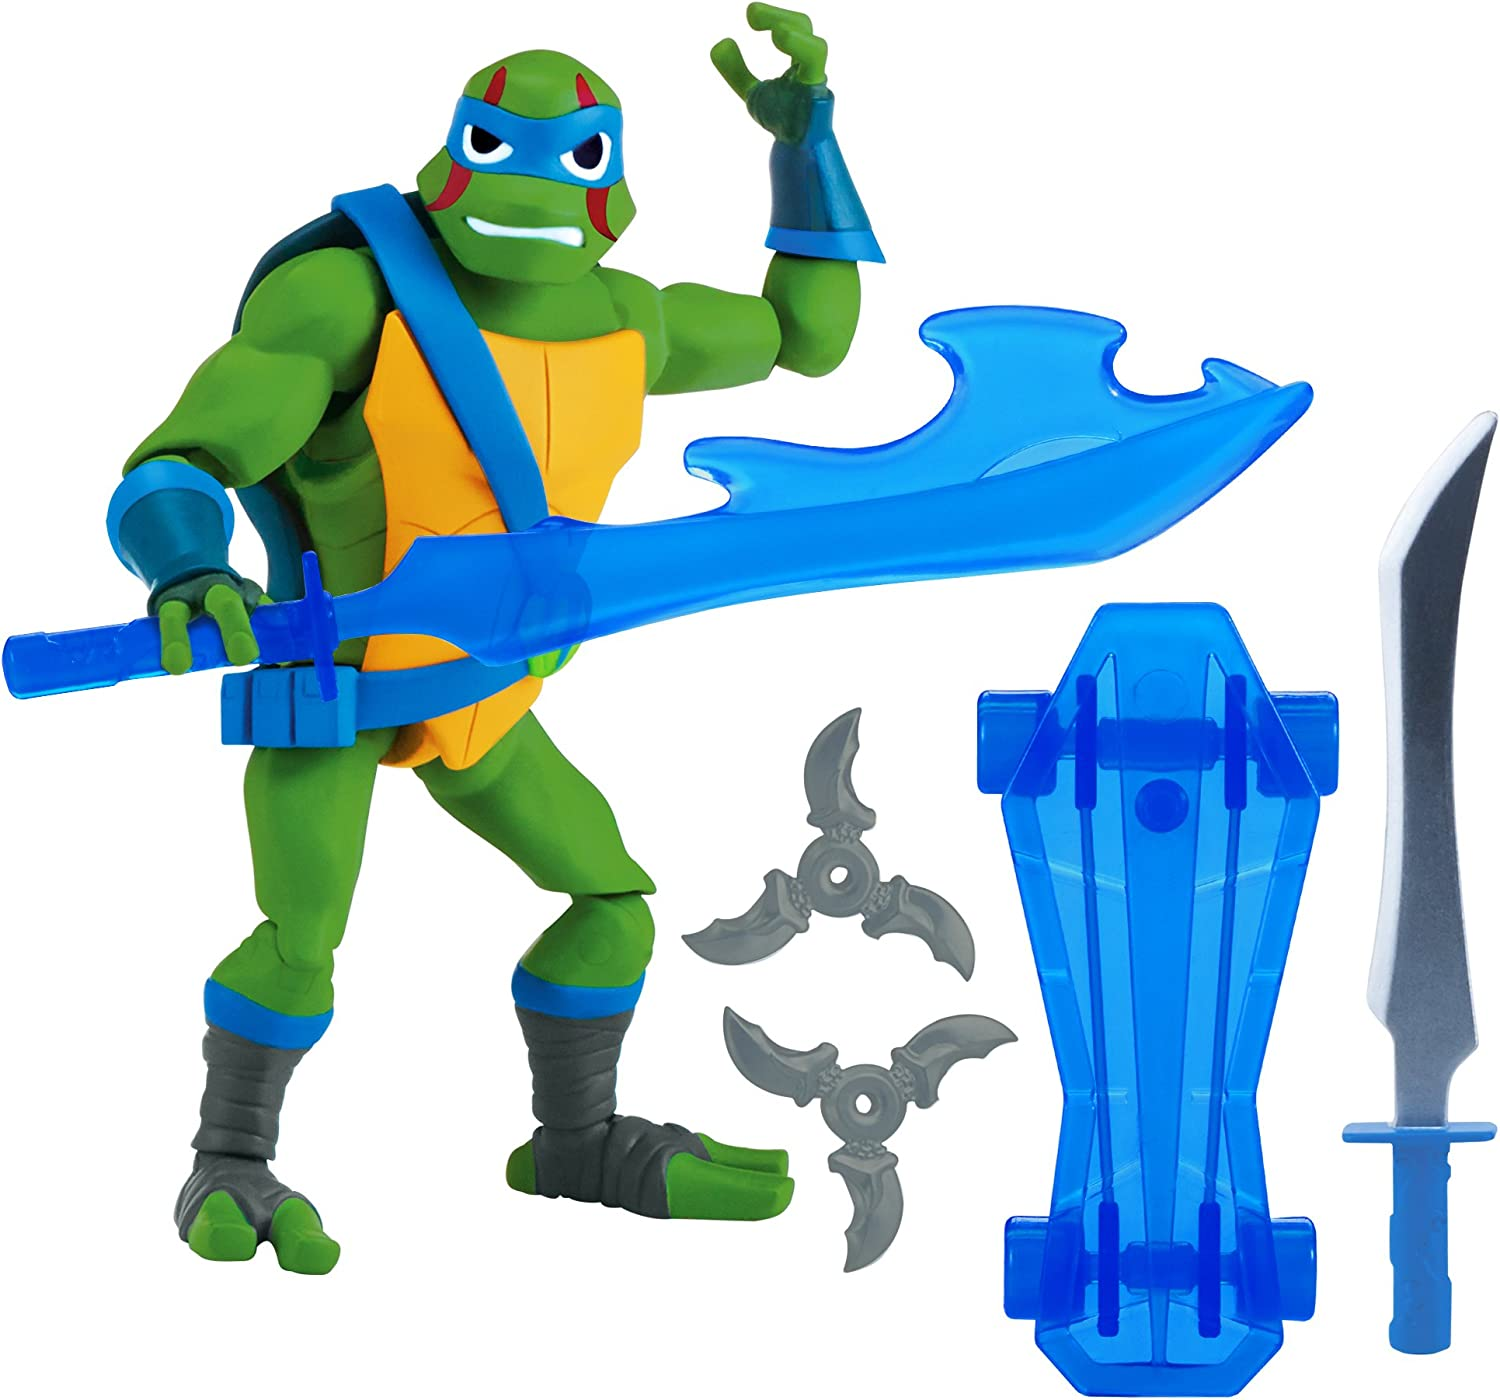 Rise of the Teenage Mutant Ninja Turtles Leonardo Action Figure